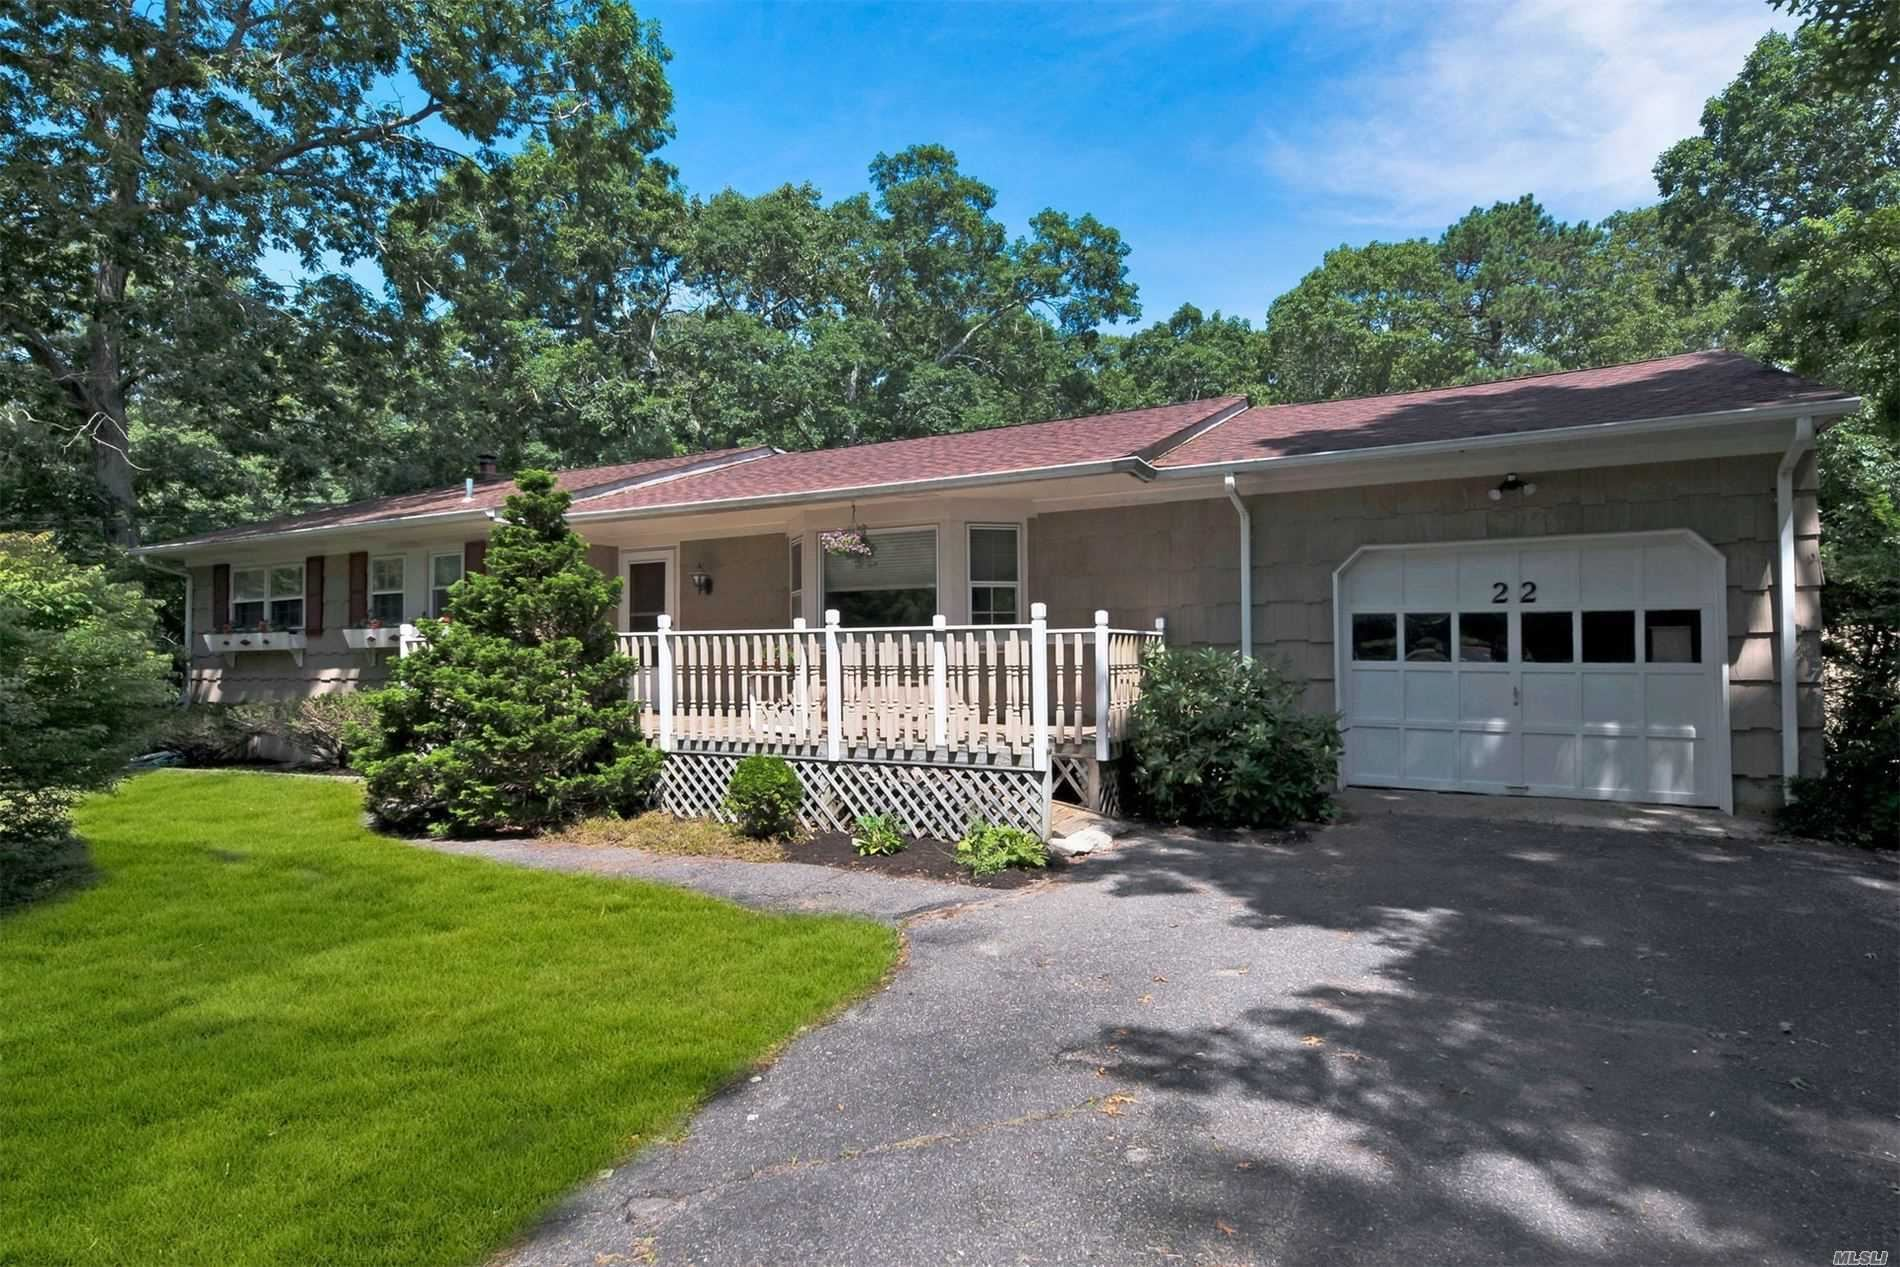 22 Kennedy Drive, East Quogue, NY 11942 - MLS#: 3237645